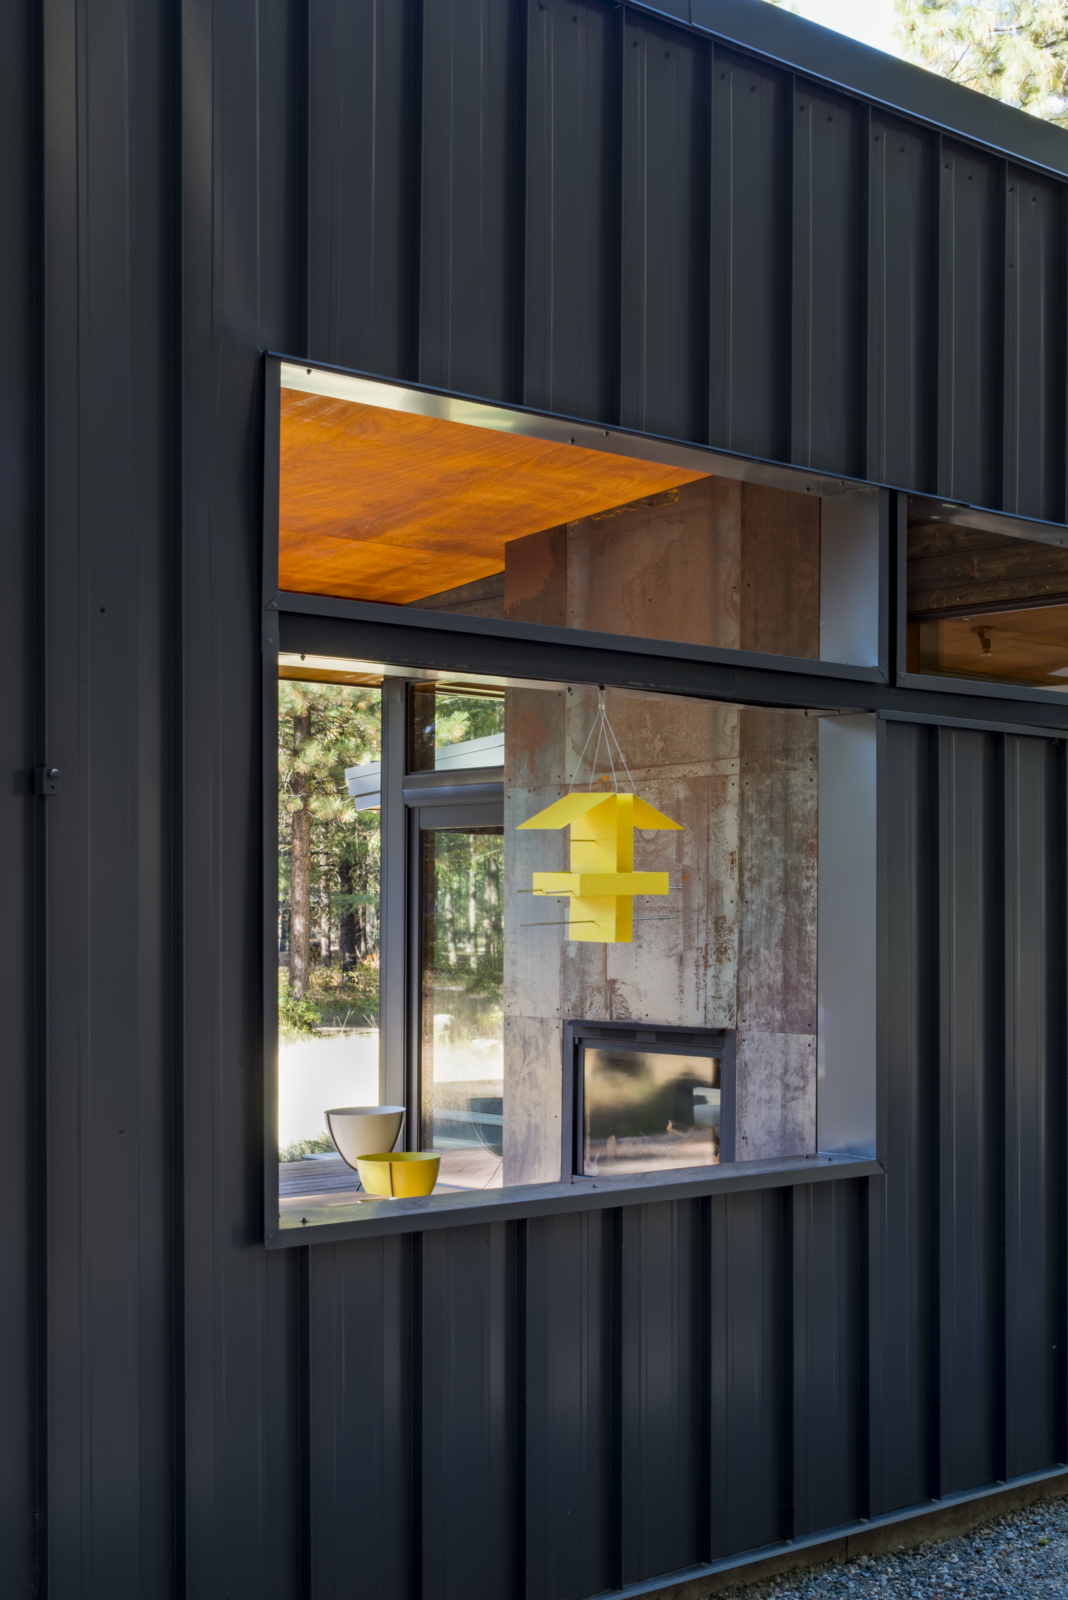 Photo 9 of 10 in A Lean Cabin in Washington Dismantles the Indoor/Outdoor Divide